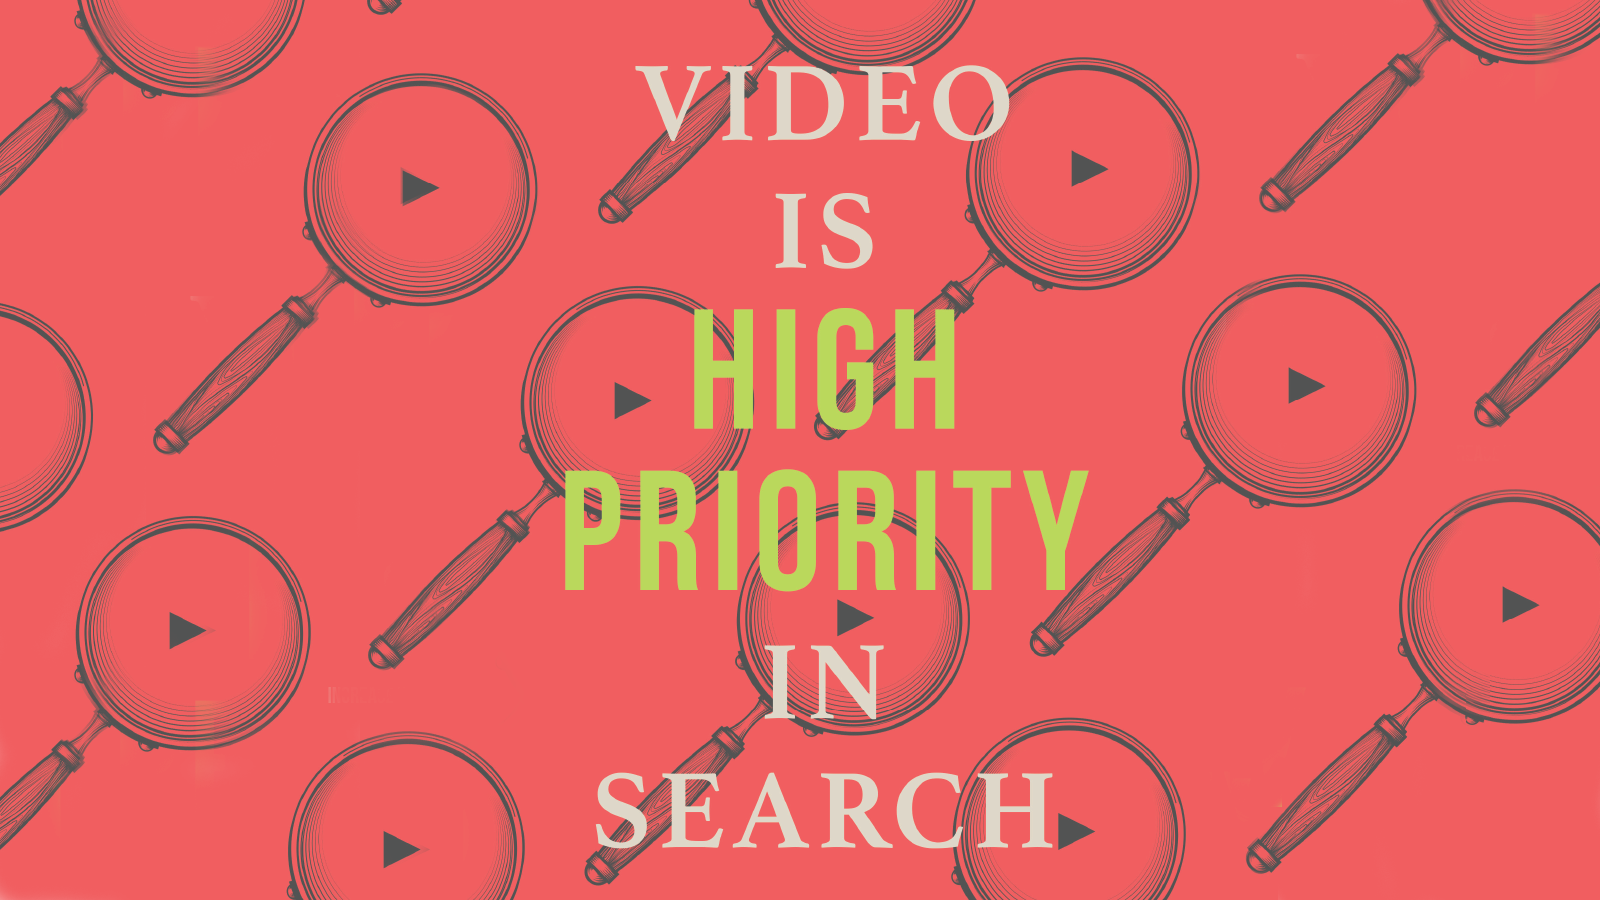 VideoPrioritySearch